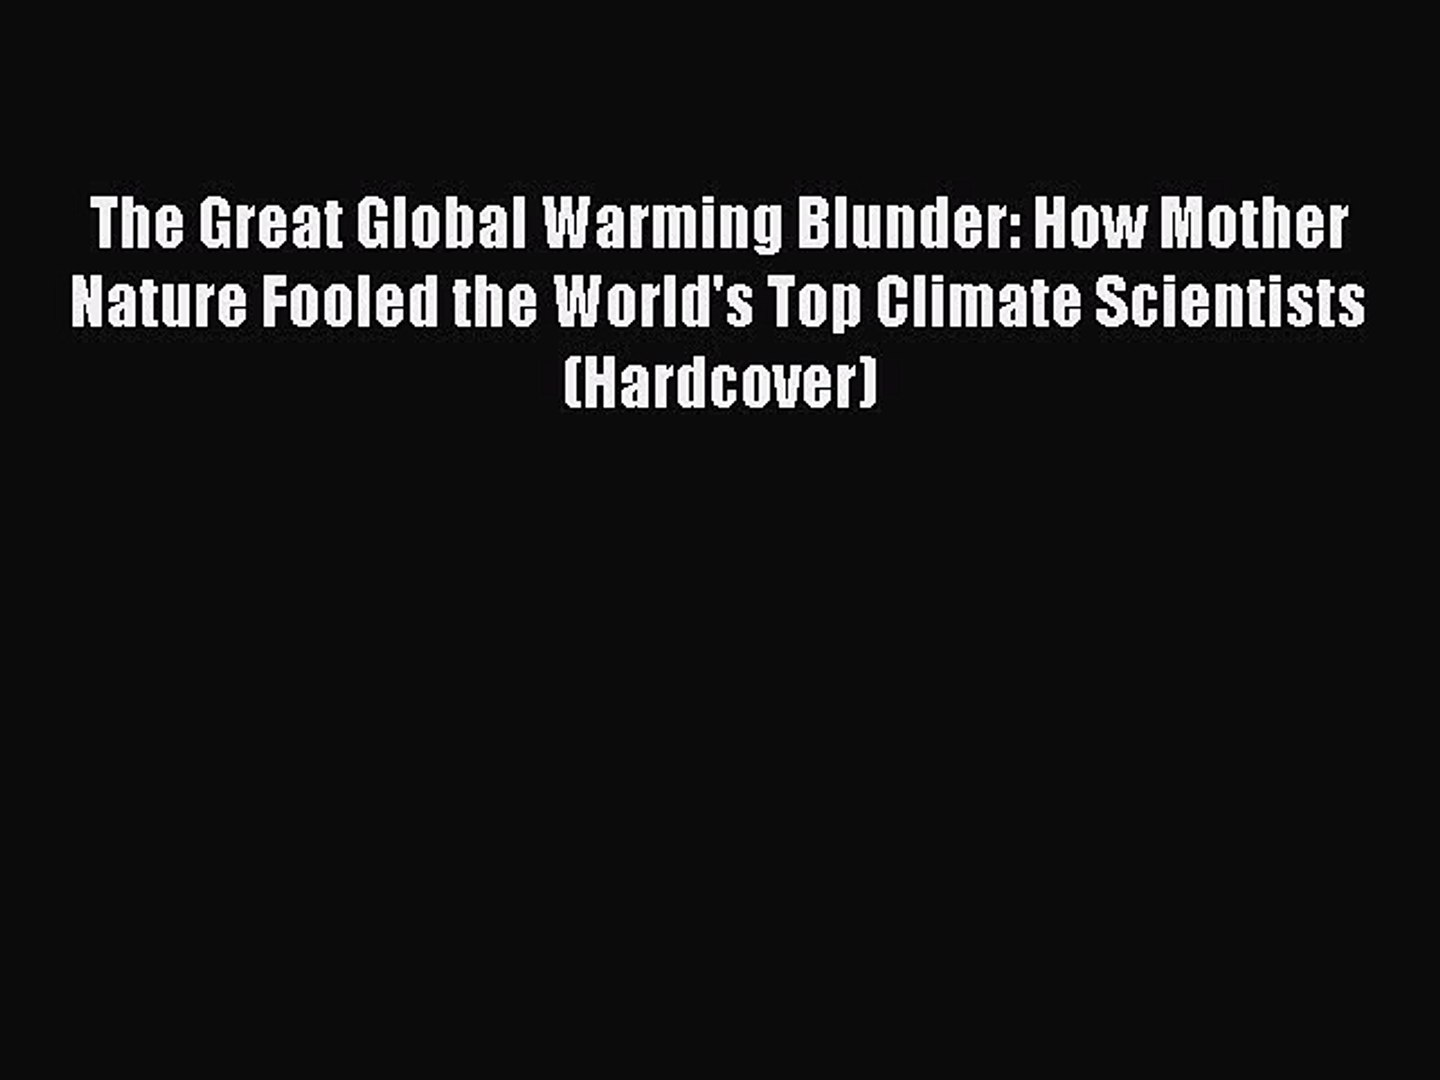 The Great Global Warming Blunder How Mother Nature Fooled the World's Top Climate Scientists